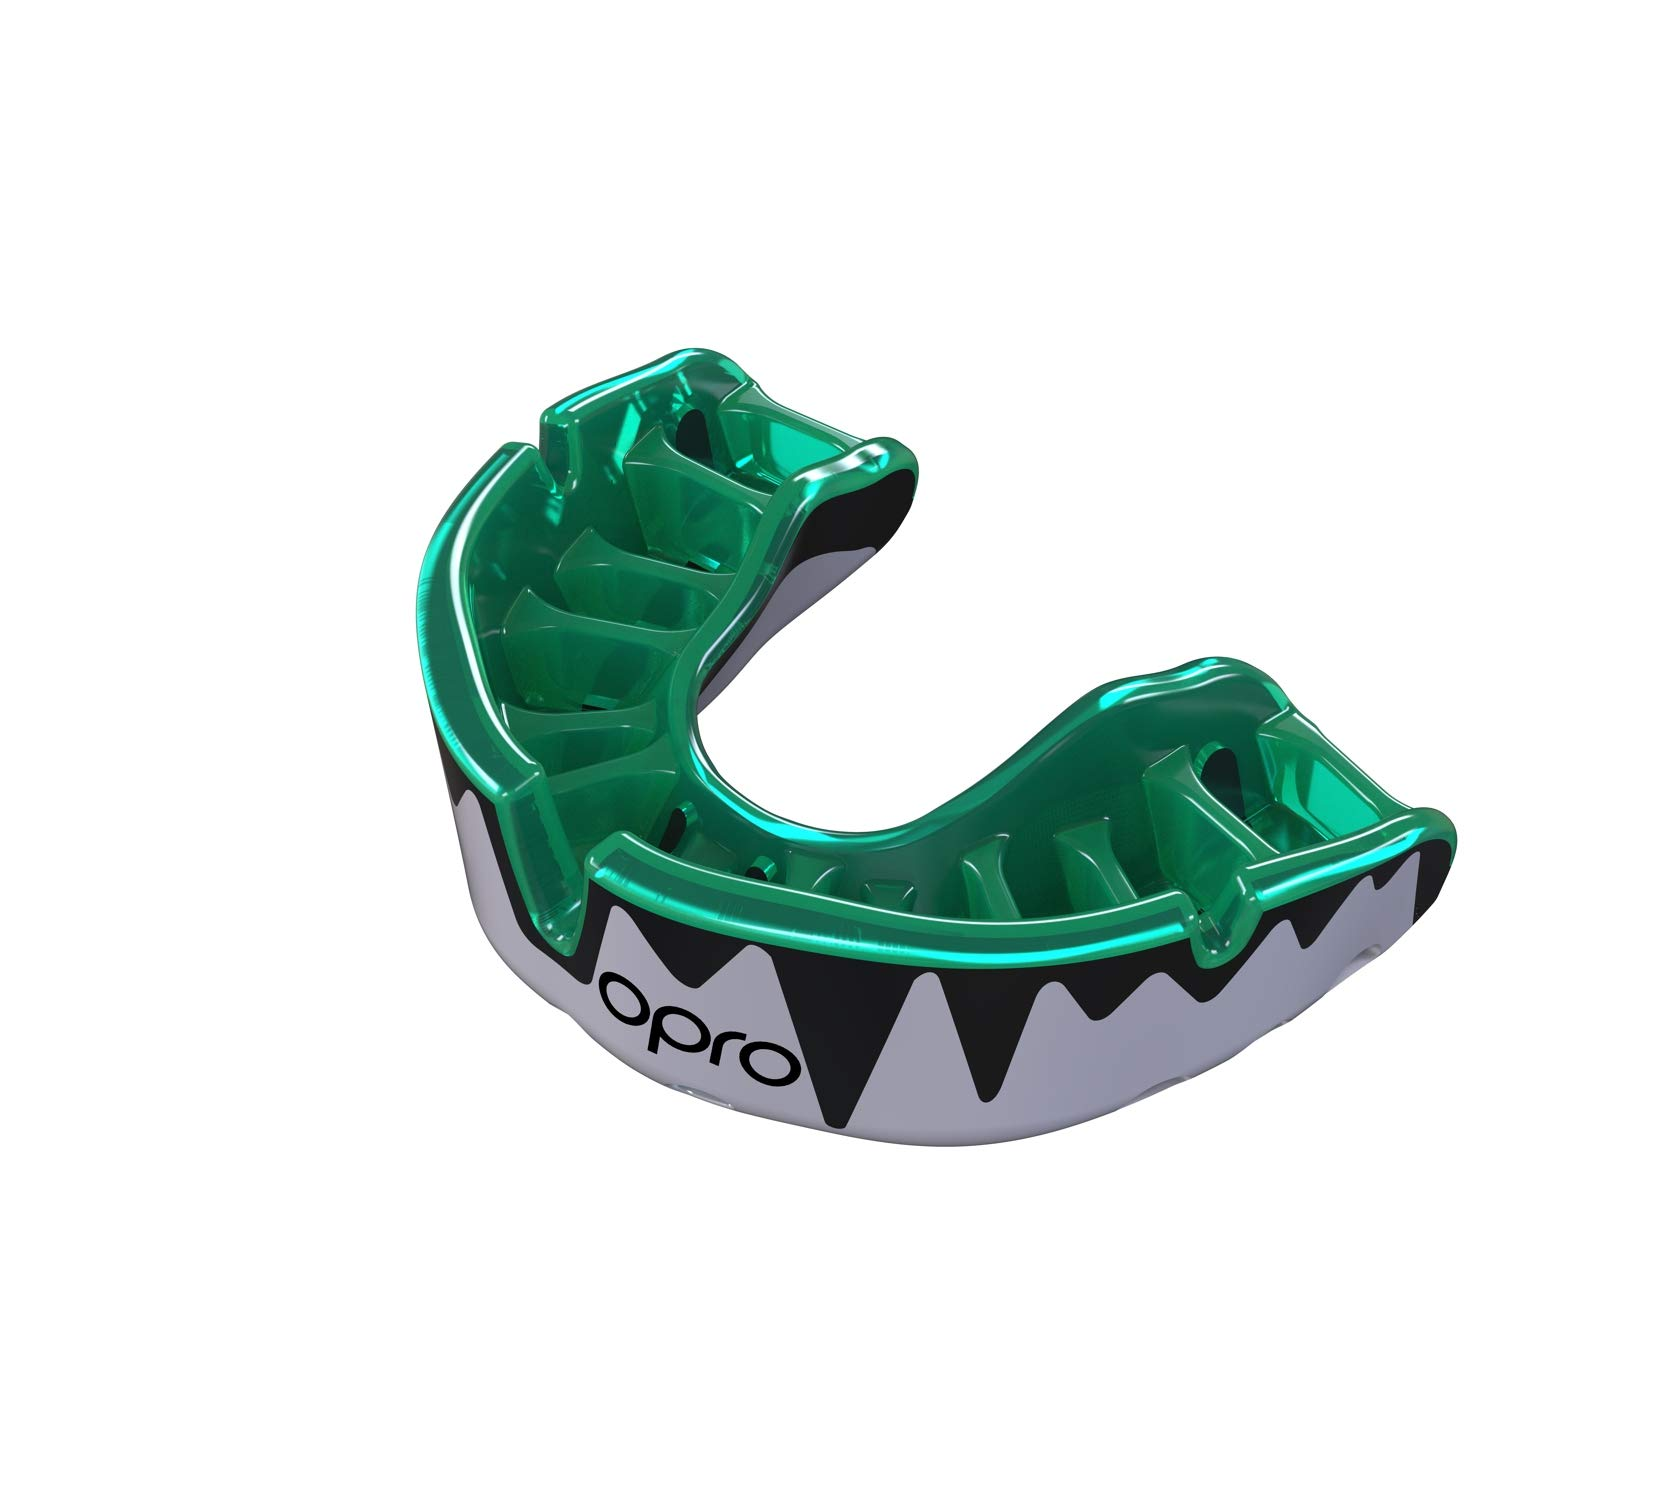 Opro Platinum Level Mouthguard | Gum Shield for Rugby, Hockey and other Contact Sports